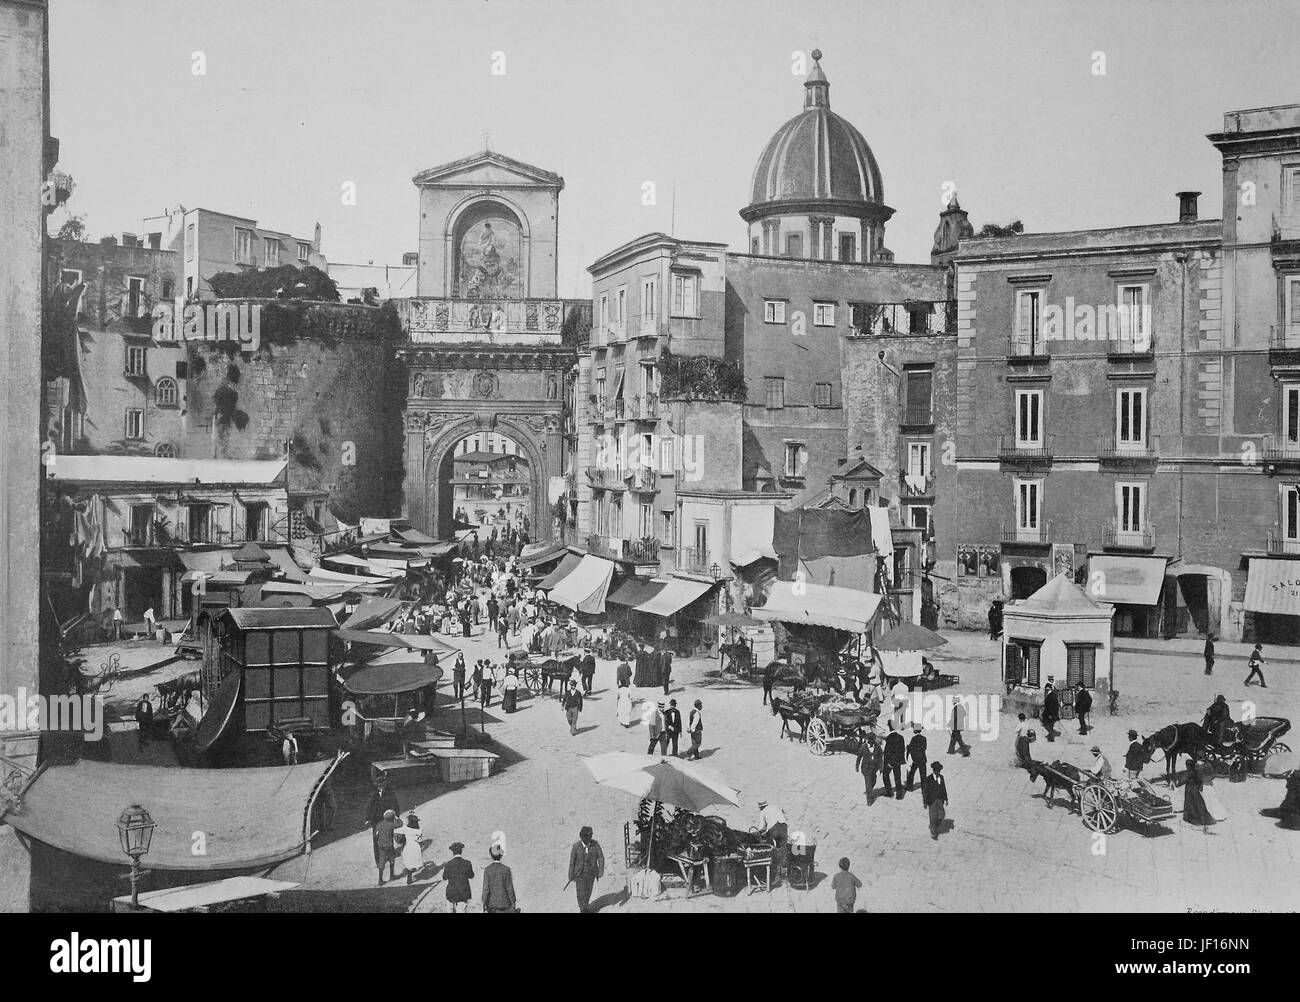 Historic images of Napoli, Neapel, Naples, Porta Capuana, Italy,  Digital improved reproduction from an original - Stock Image